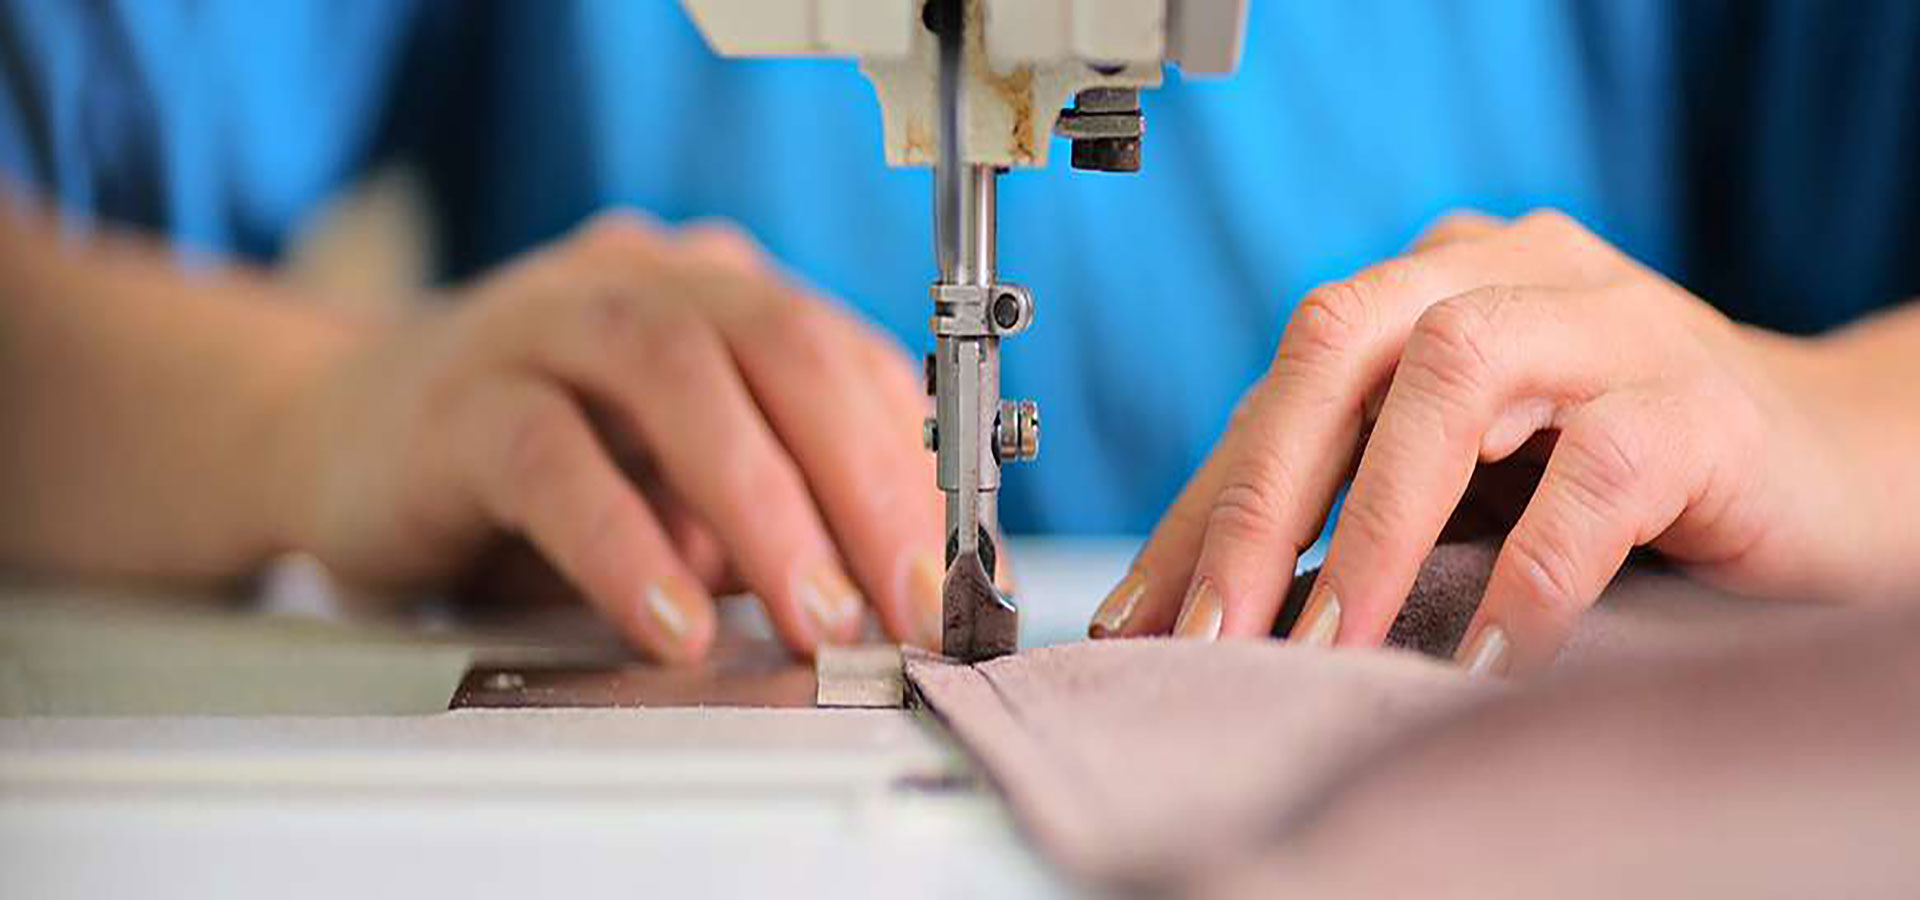 we provide Sourcing, manufacturing